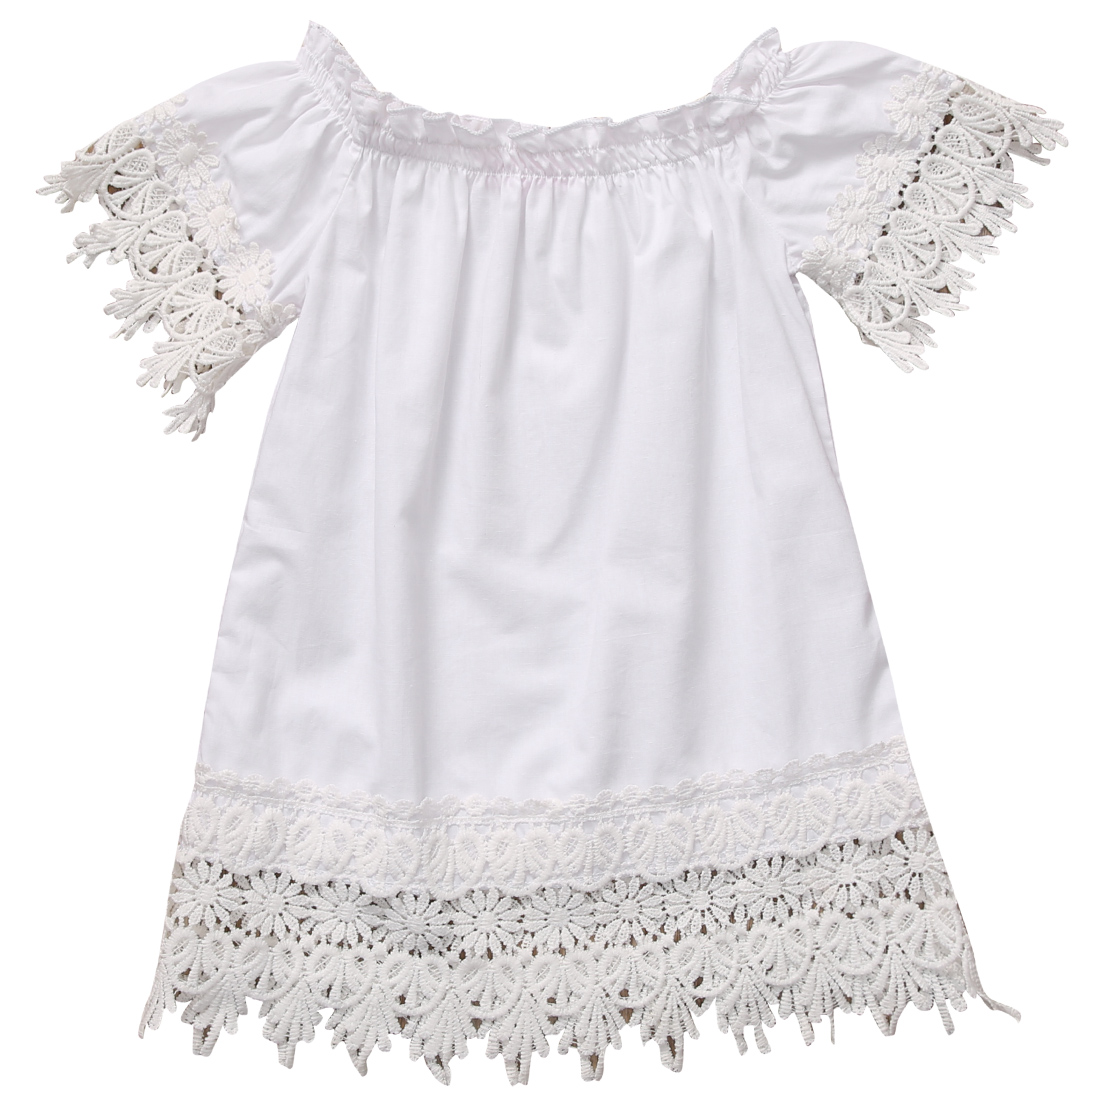 Kids Baby Girls Clothes Dresses Princess Party Lace Top Casual Sundress White Brief Costume Dress Girl New Summer baby girl summer dress children res minnie mouse sleeveless clothes kids casual cotton casual clothing princess girls dresses